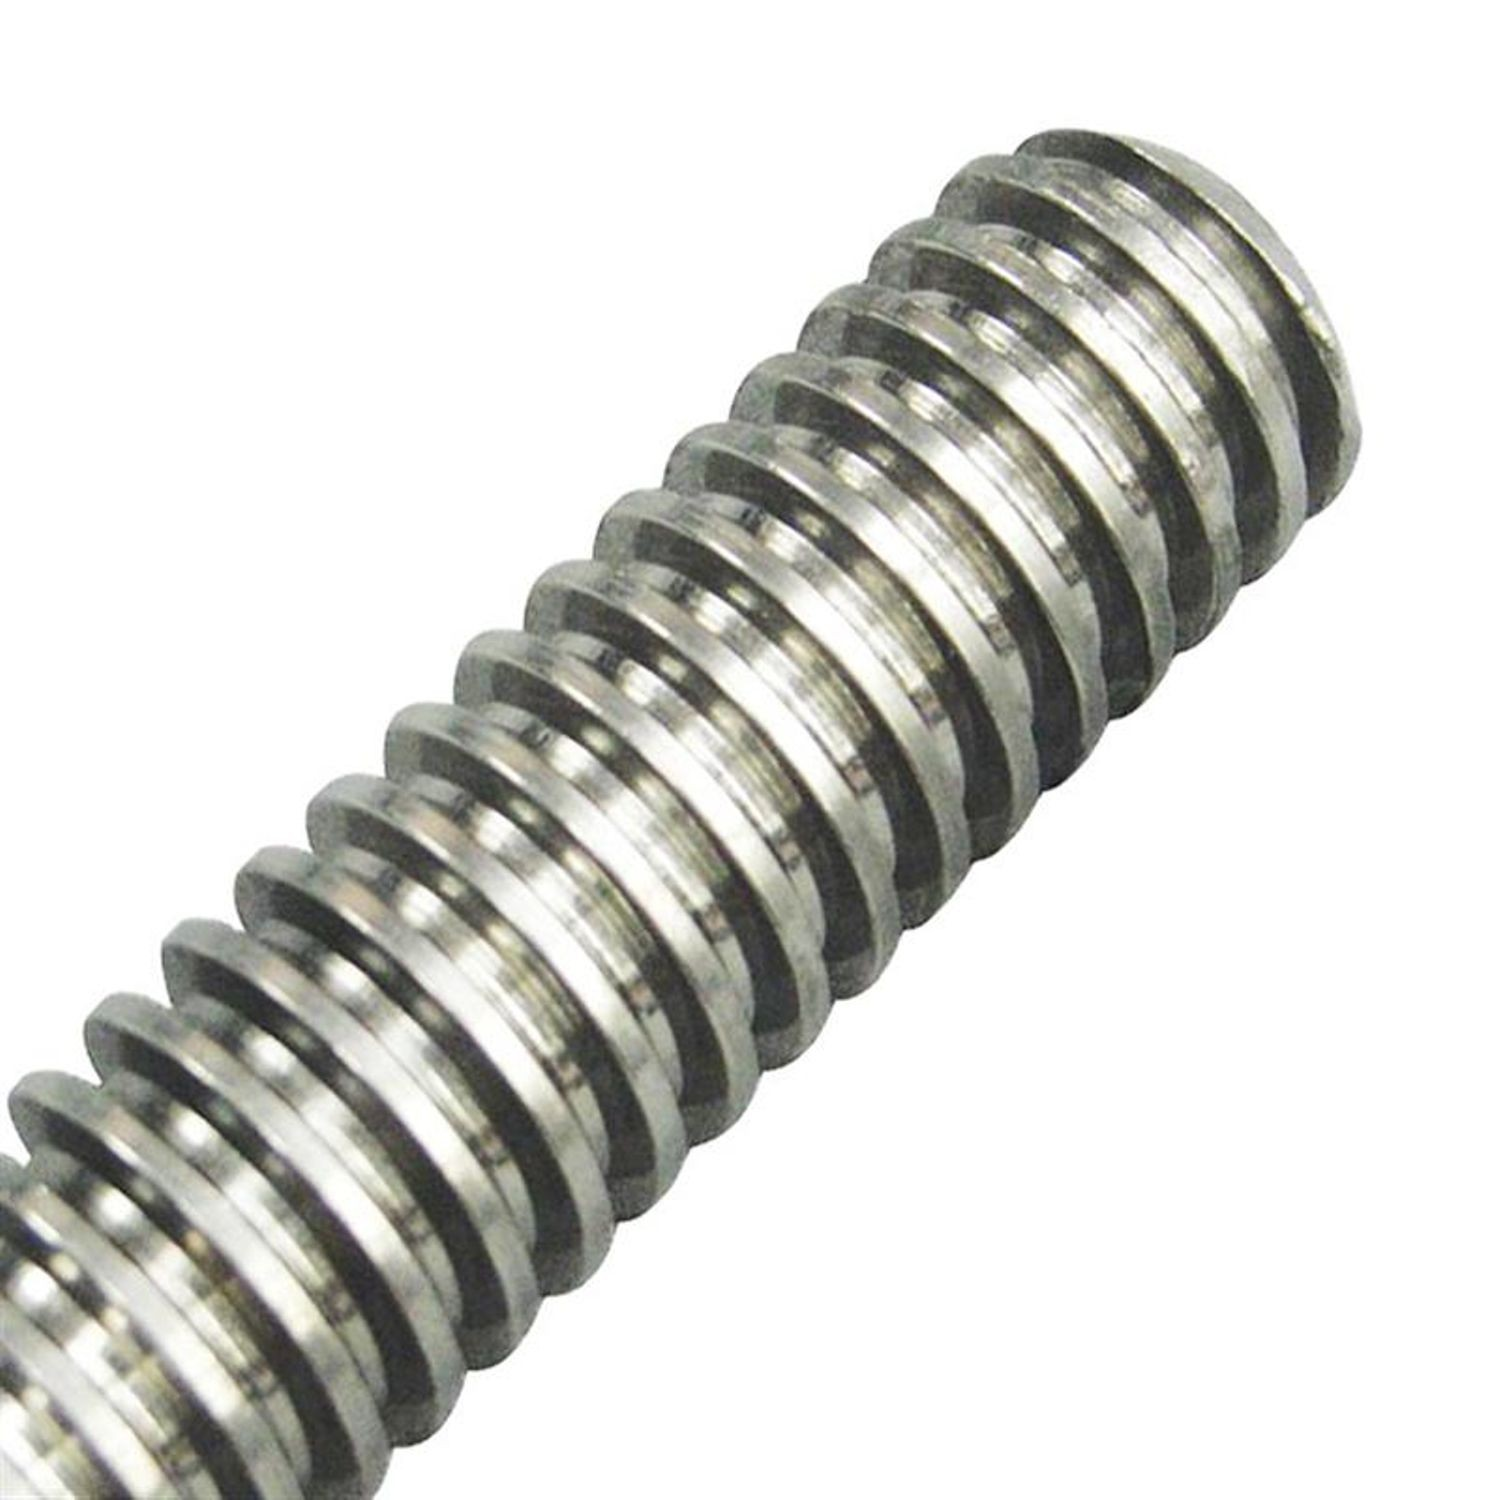 5 8 8 X 6 Feet Acme Threaded Rod Plain Finish K L Jack